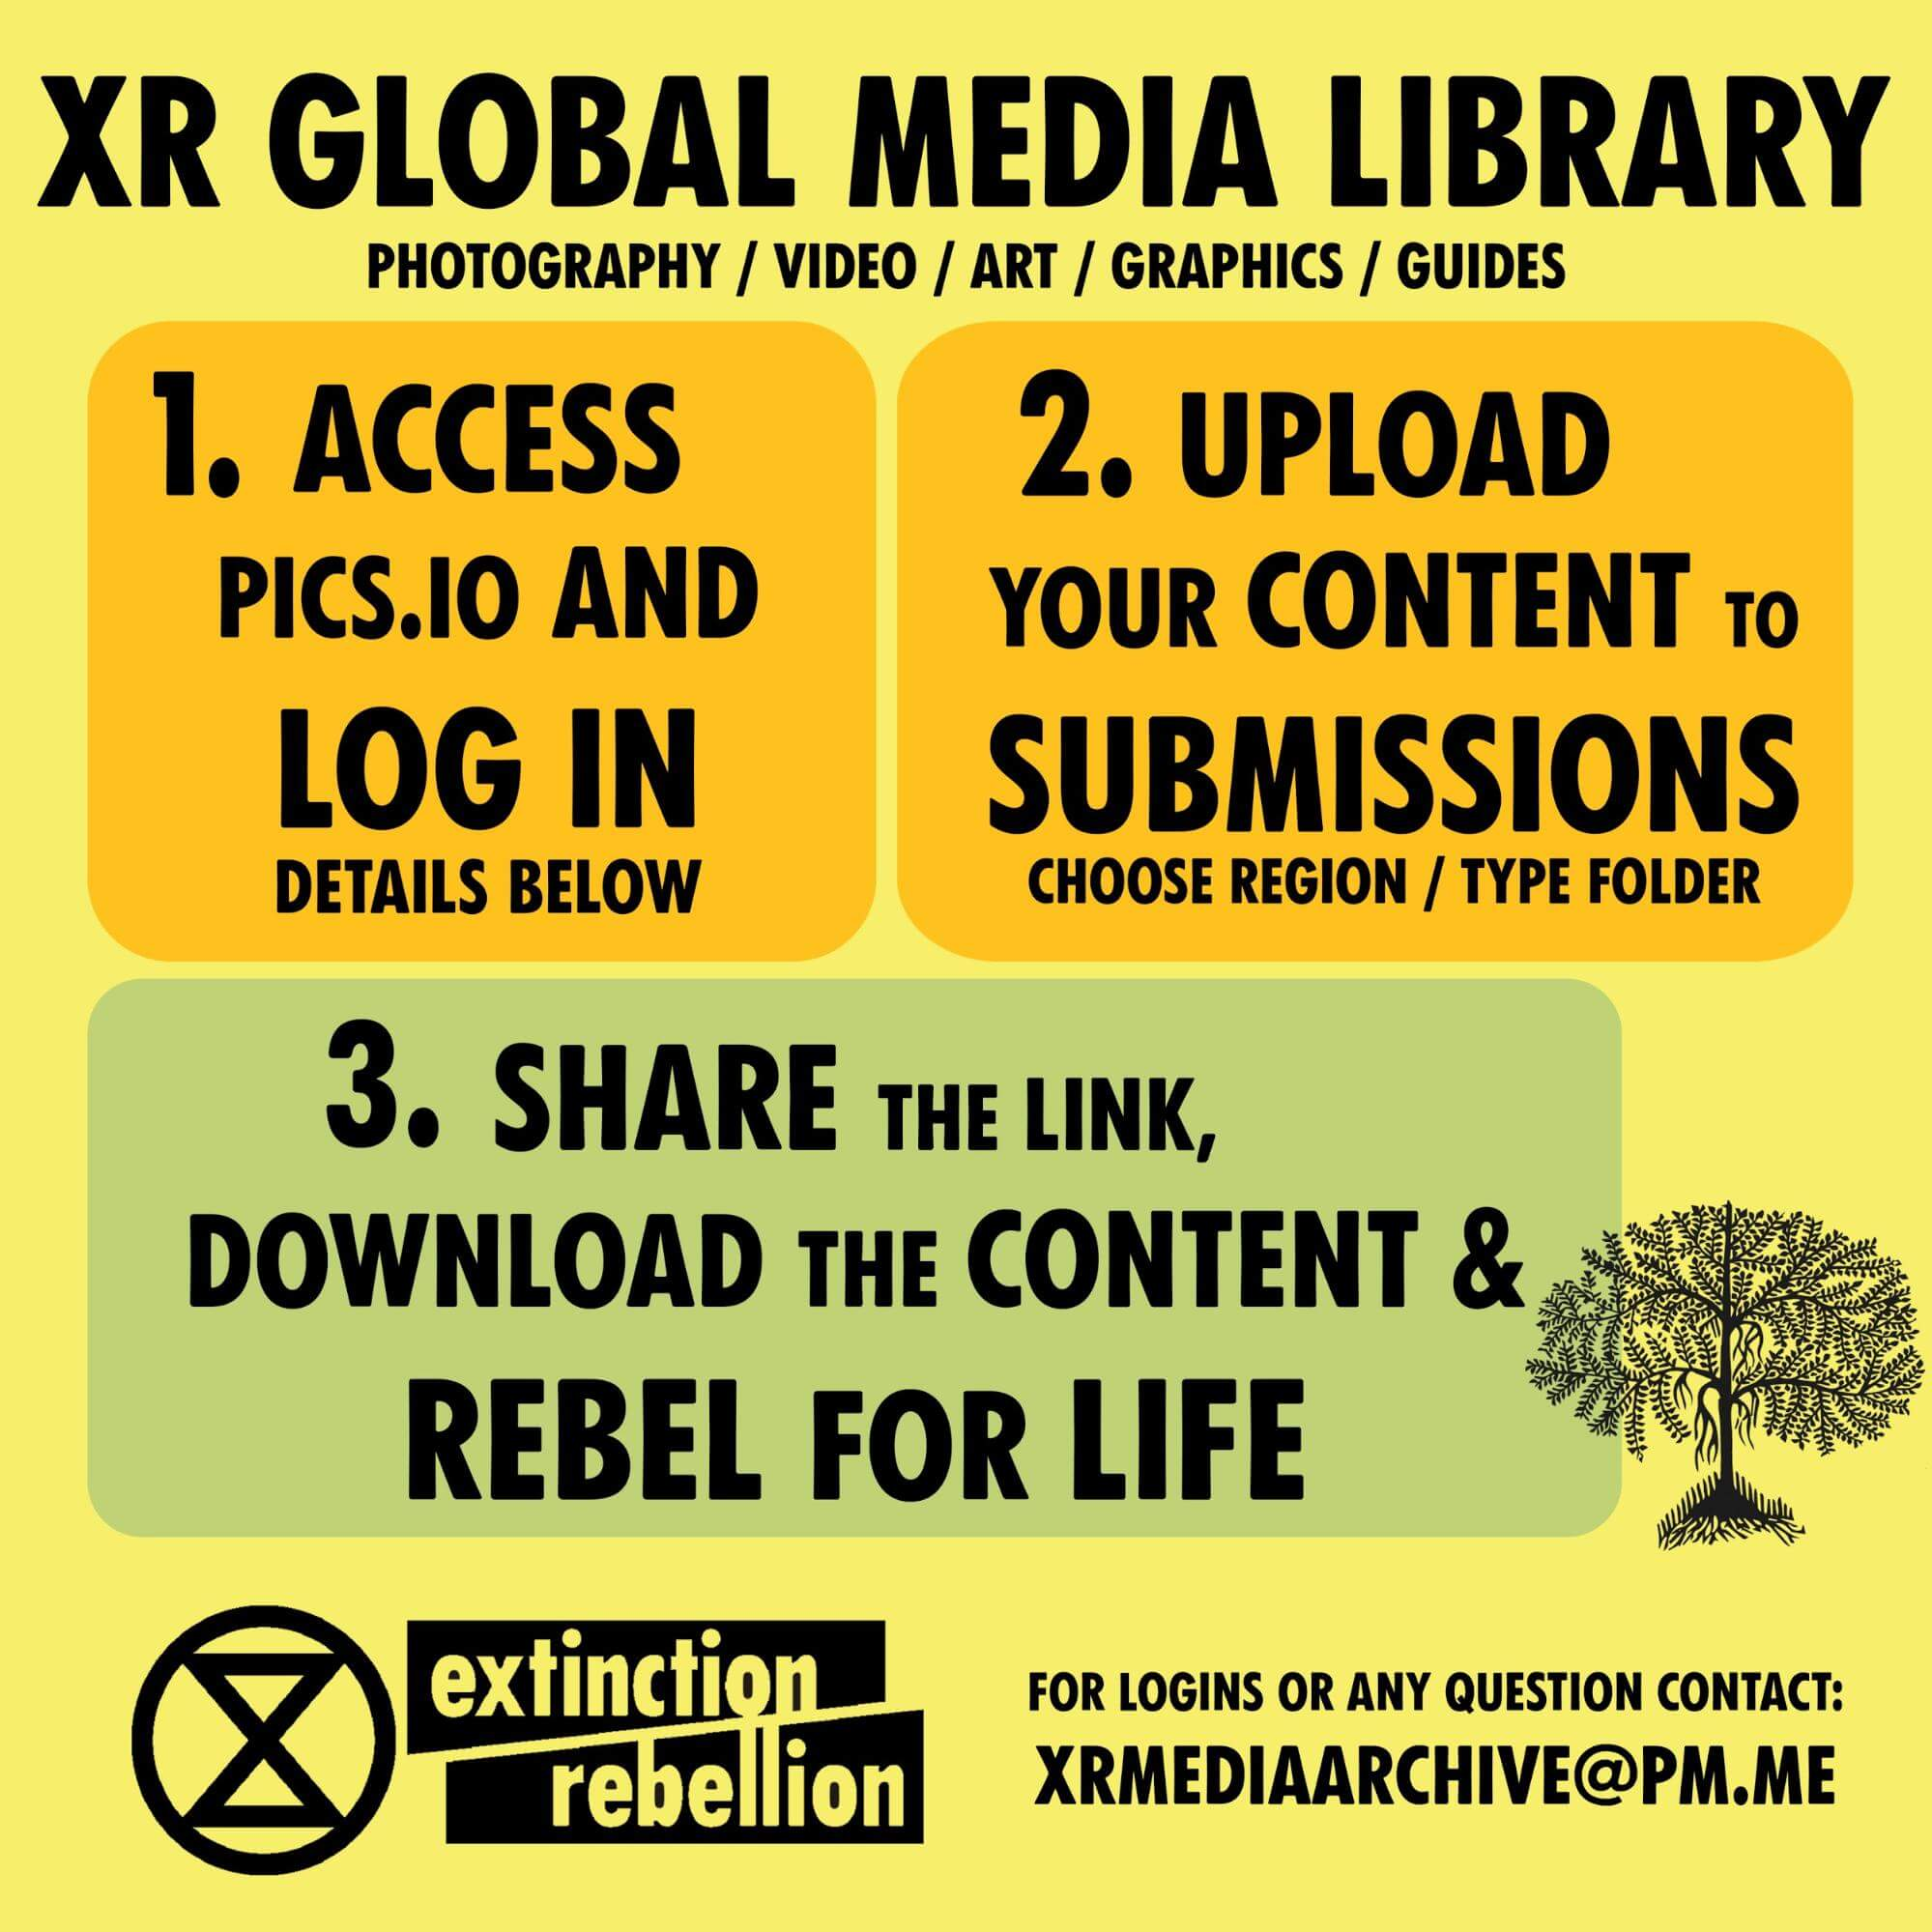 XR Global Media Library graphic.